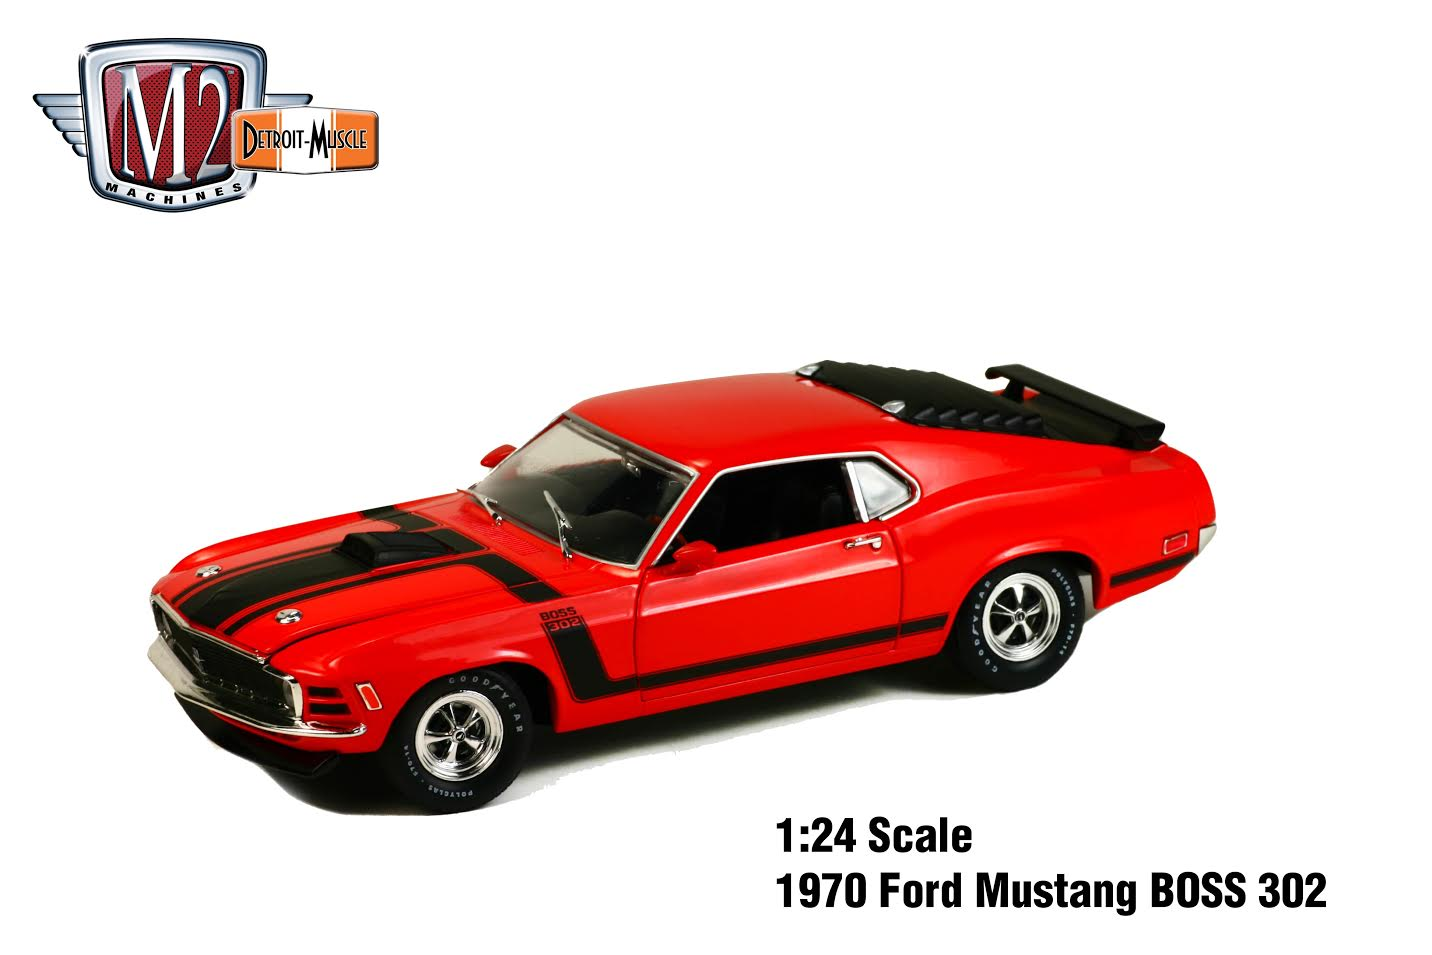 The chase car 1970 ford mustang boss 302 built for battle in the trans am racing series the boss 302 was a fierce competitor